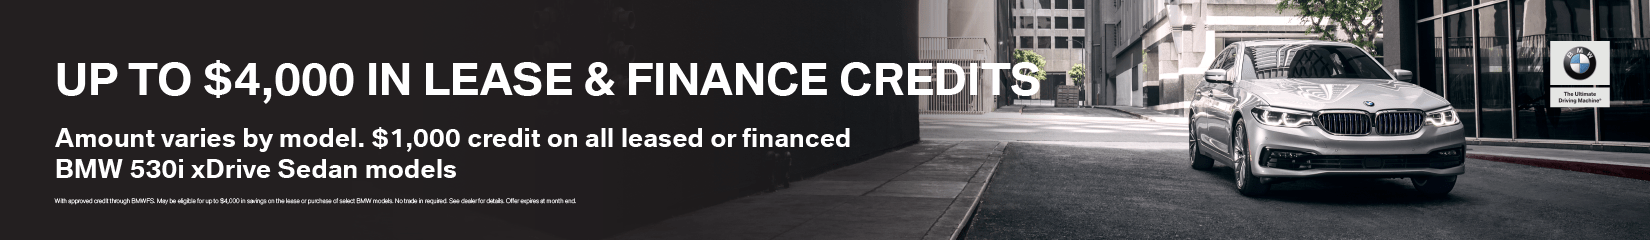 $4,000 Lease & Finance Credits